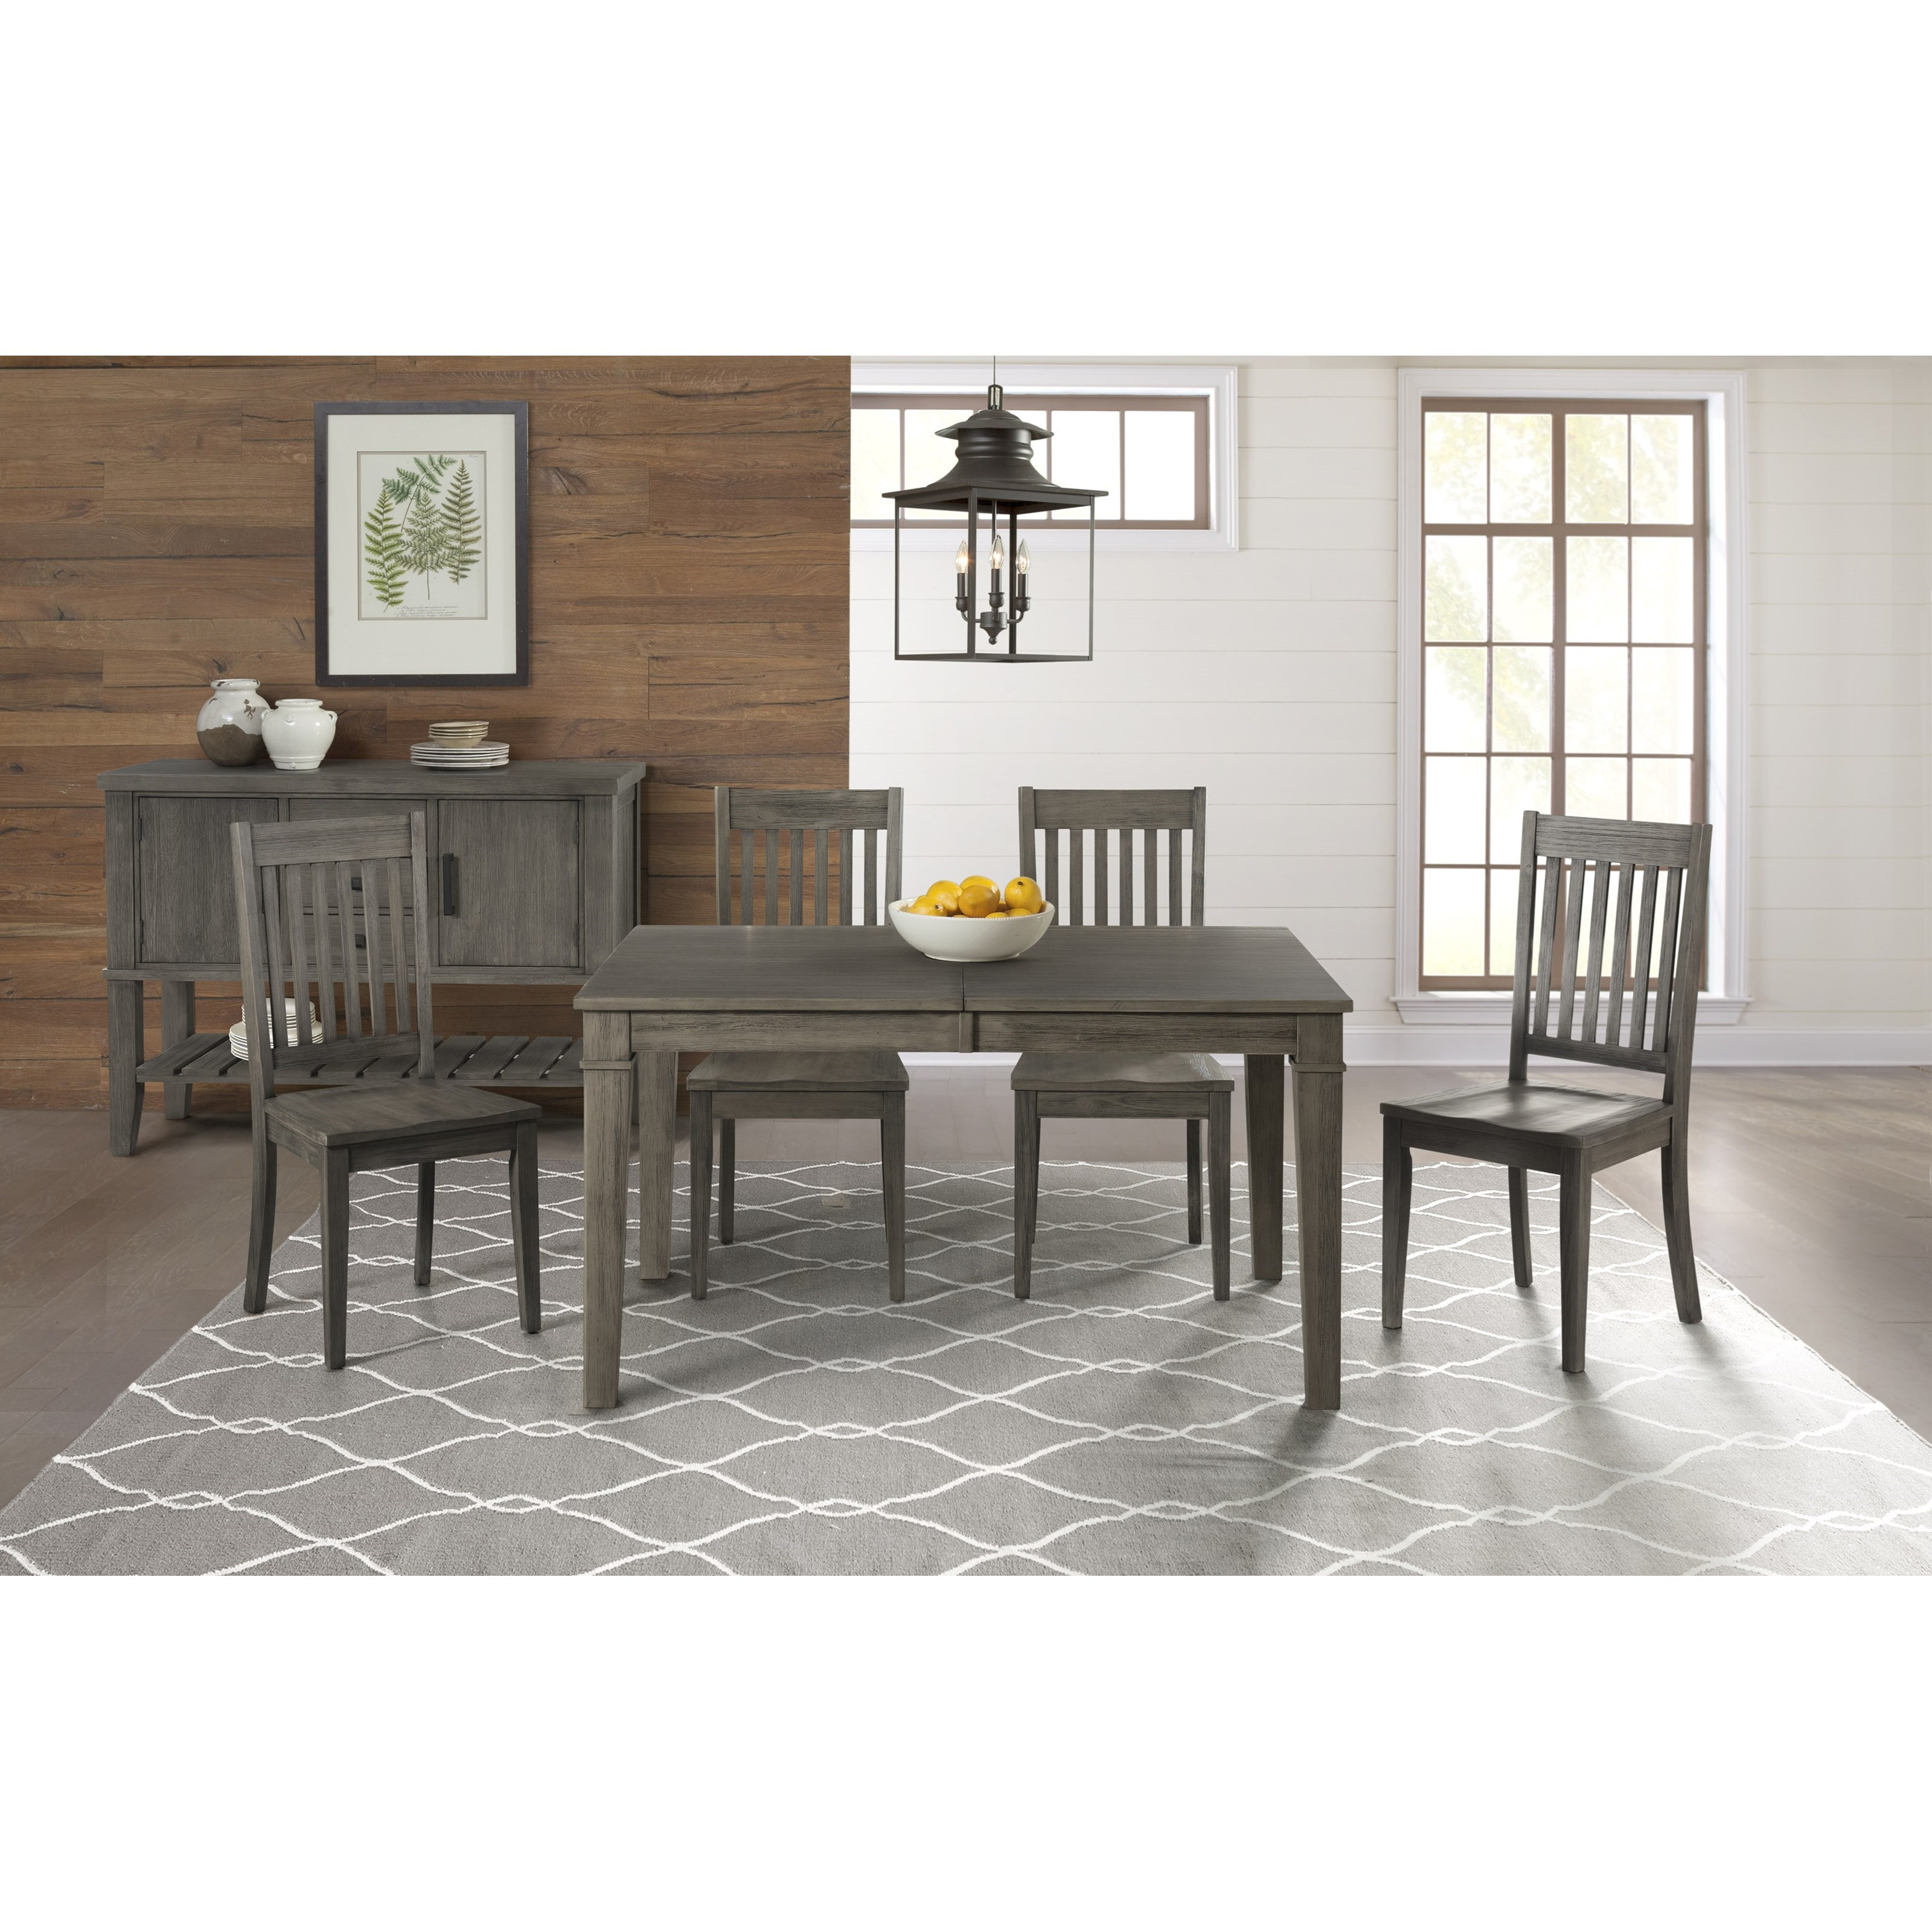 AAmerica Huron Casual Dining Room Group - Item Number: HUR-DG Dining Room Group 11